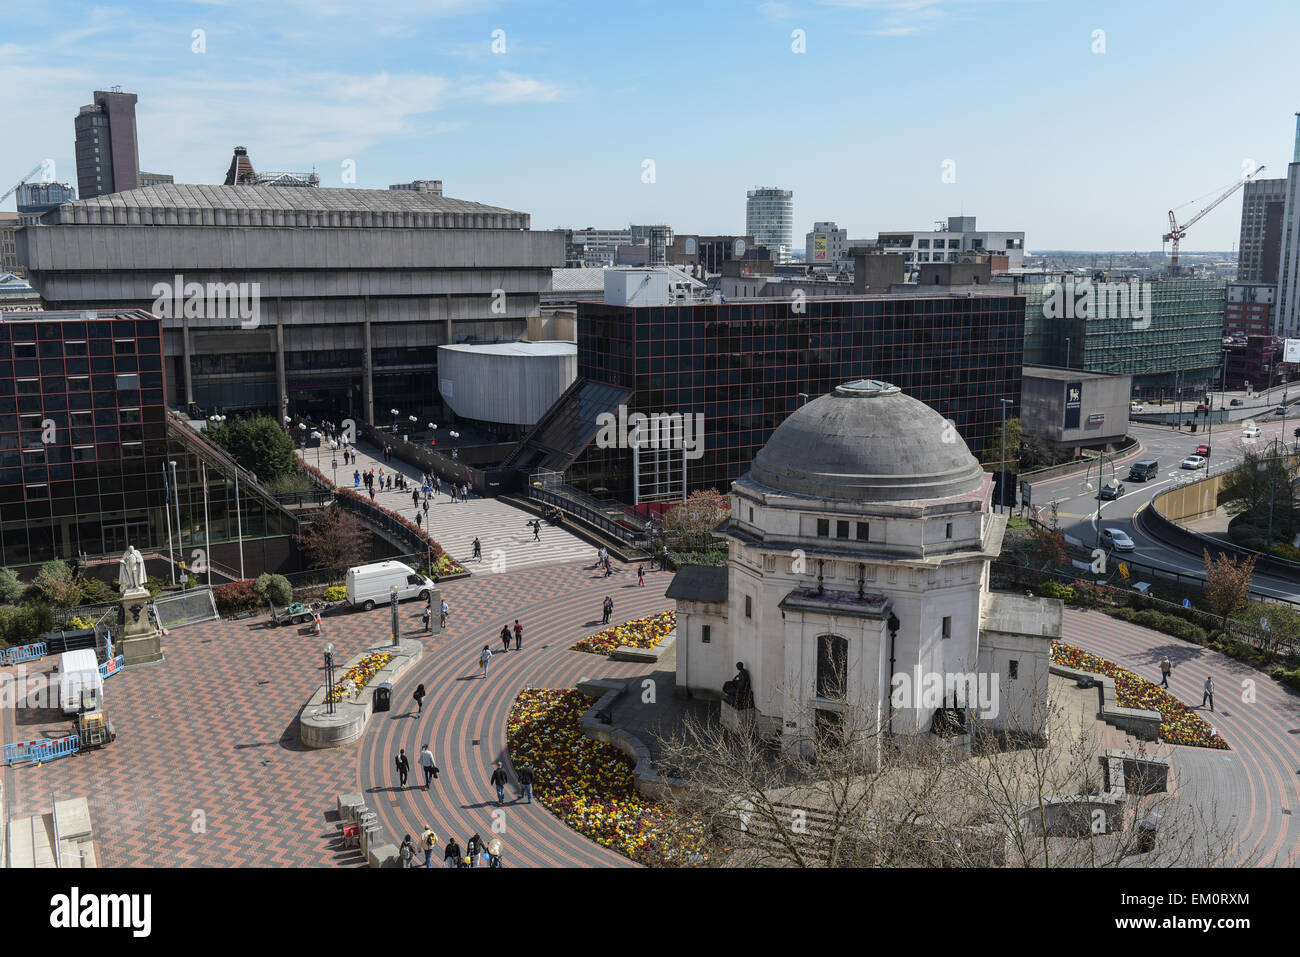 Birmingham, UK. 15th Apr, 2015. The old Birmingham Central Library which is in the process of being demolished can - Stock Image